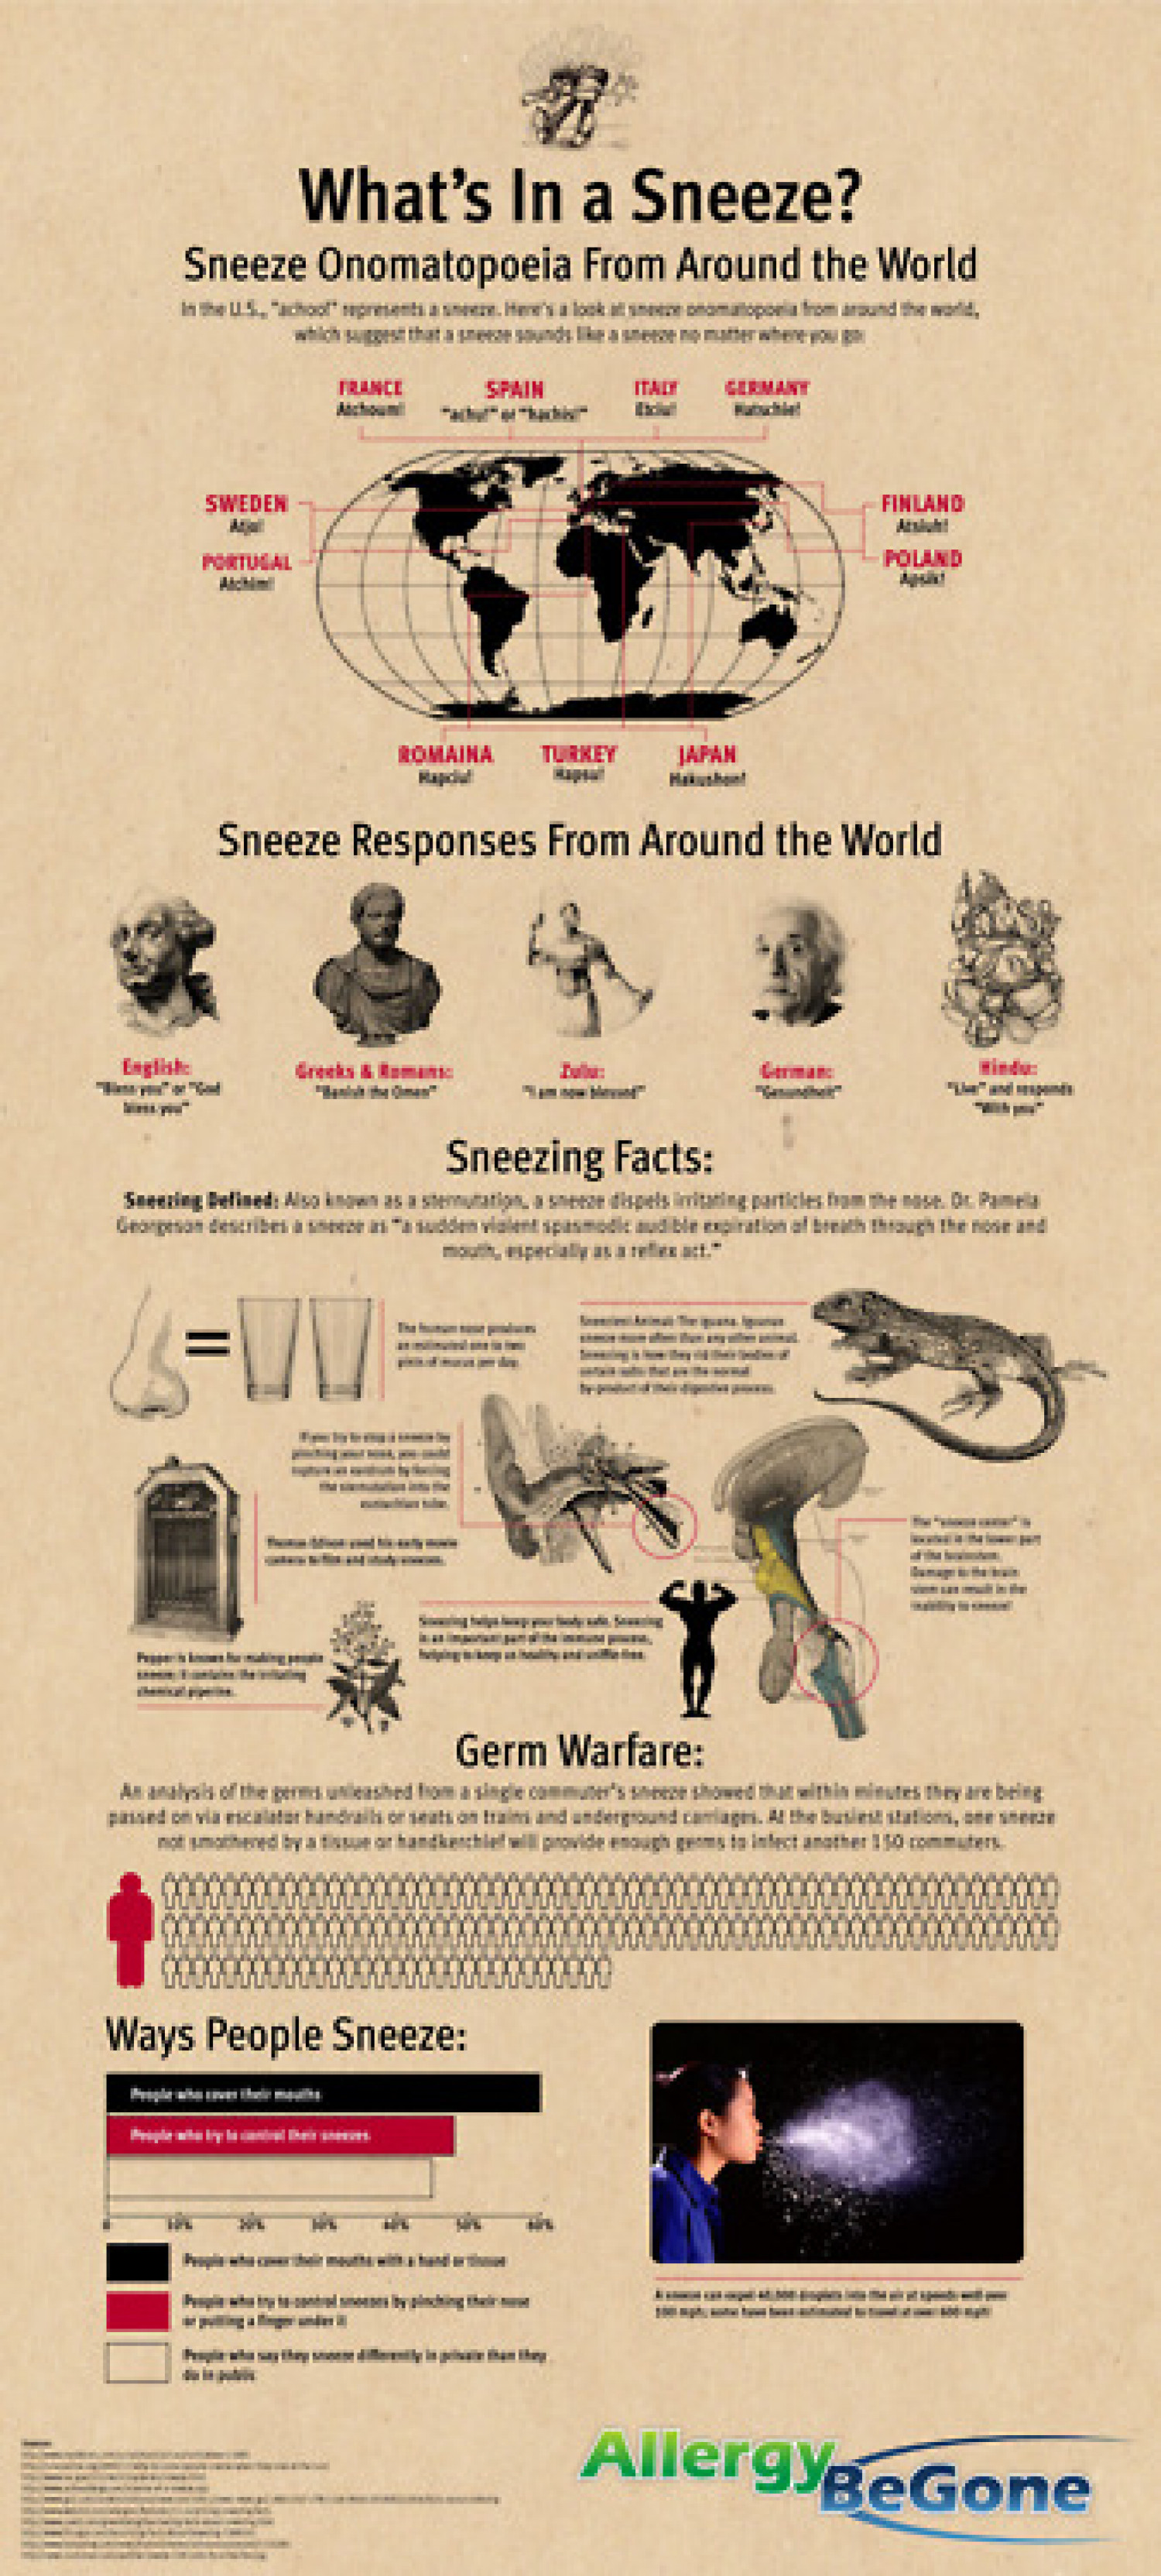 What's In a Sneeze? Infographic